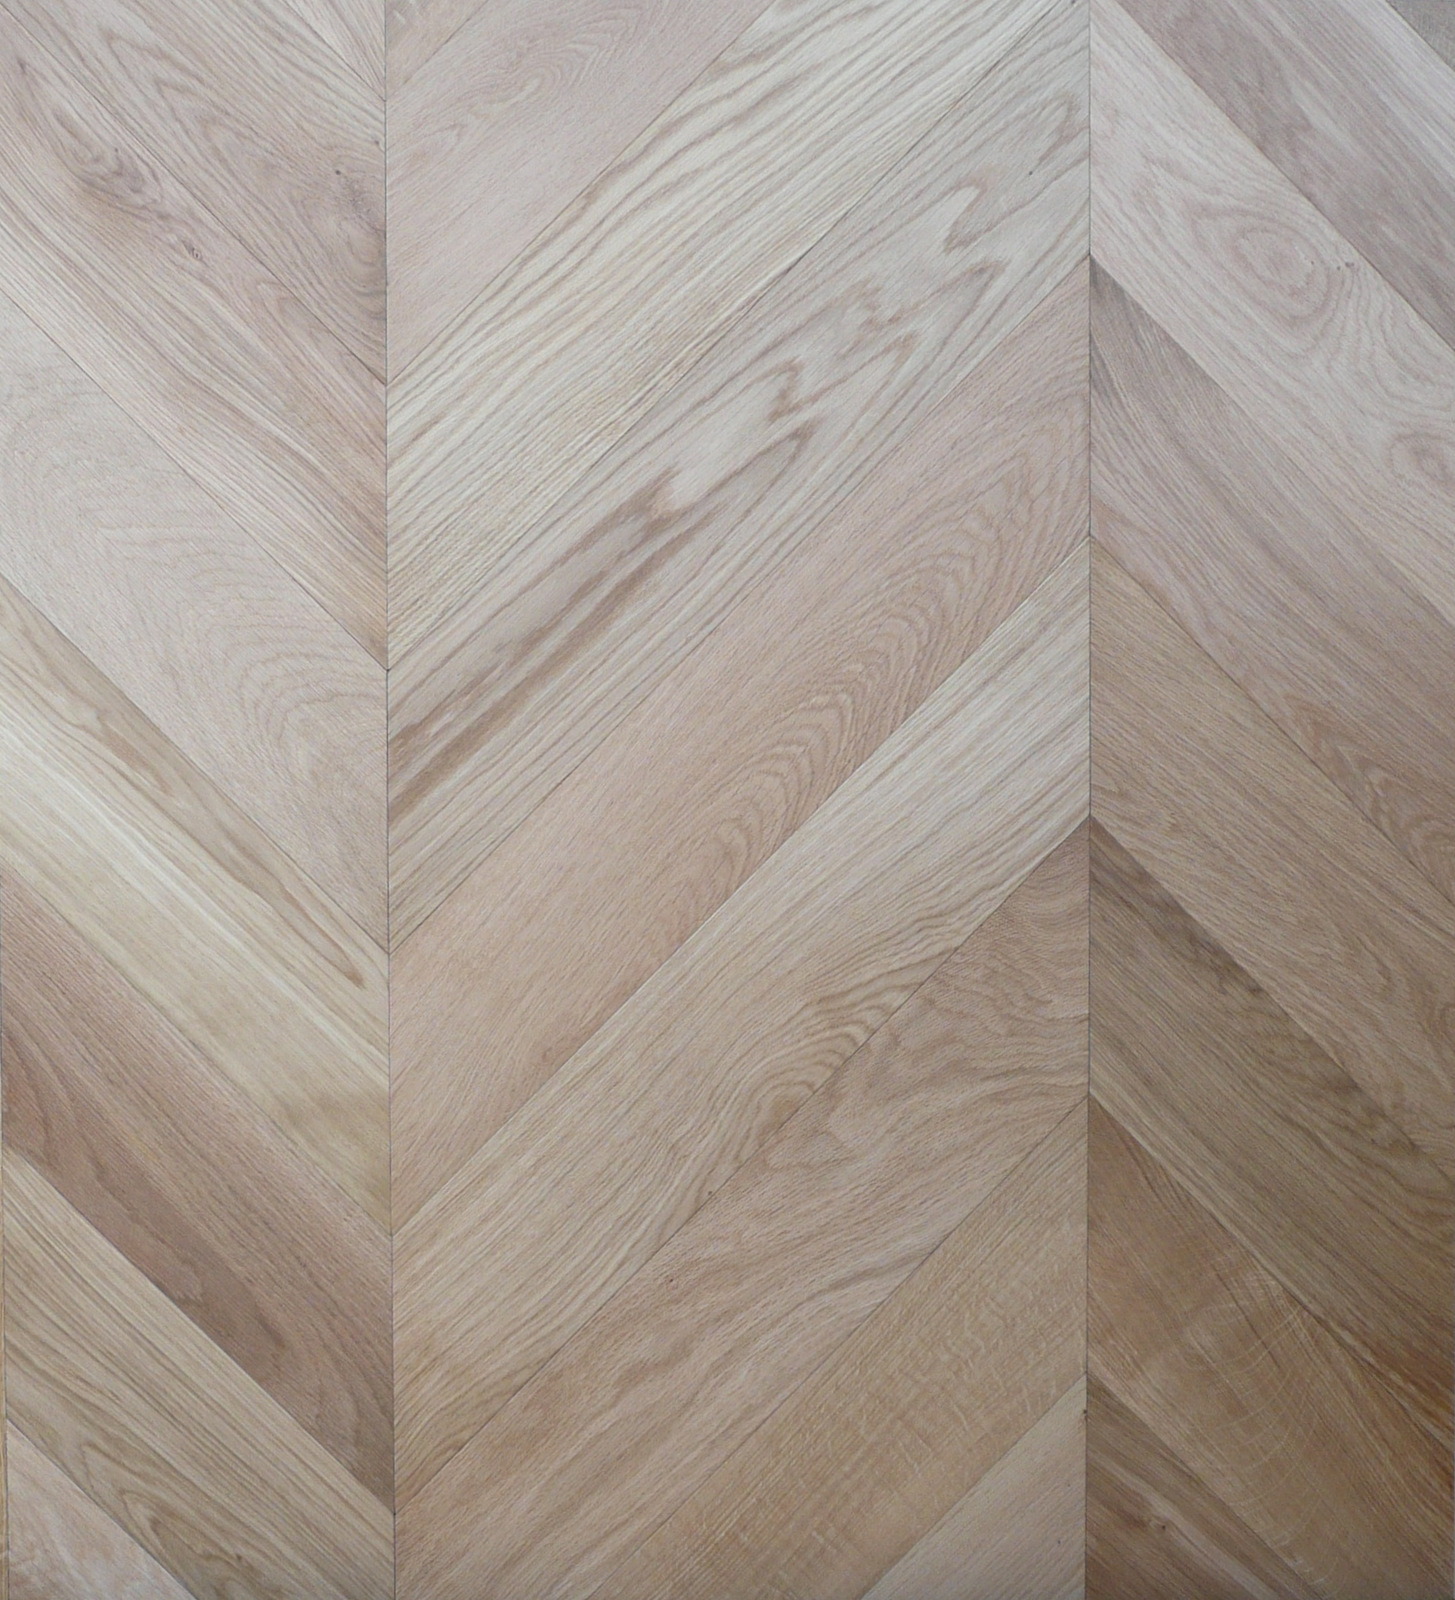 Chevron - Oak Elegance Osmo oiled